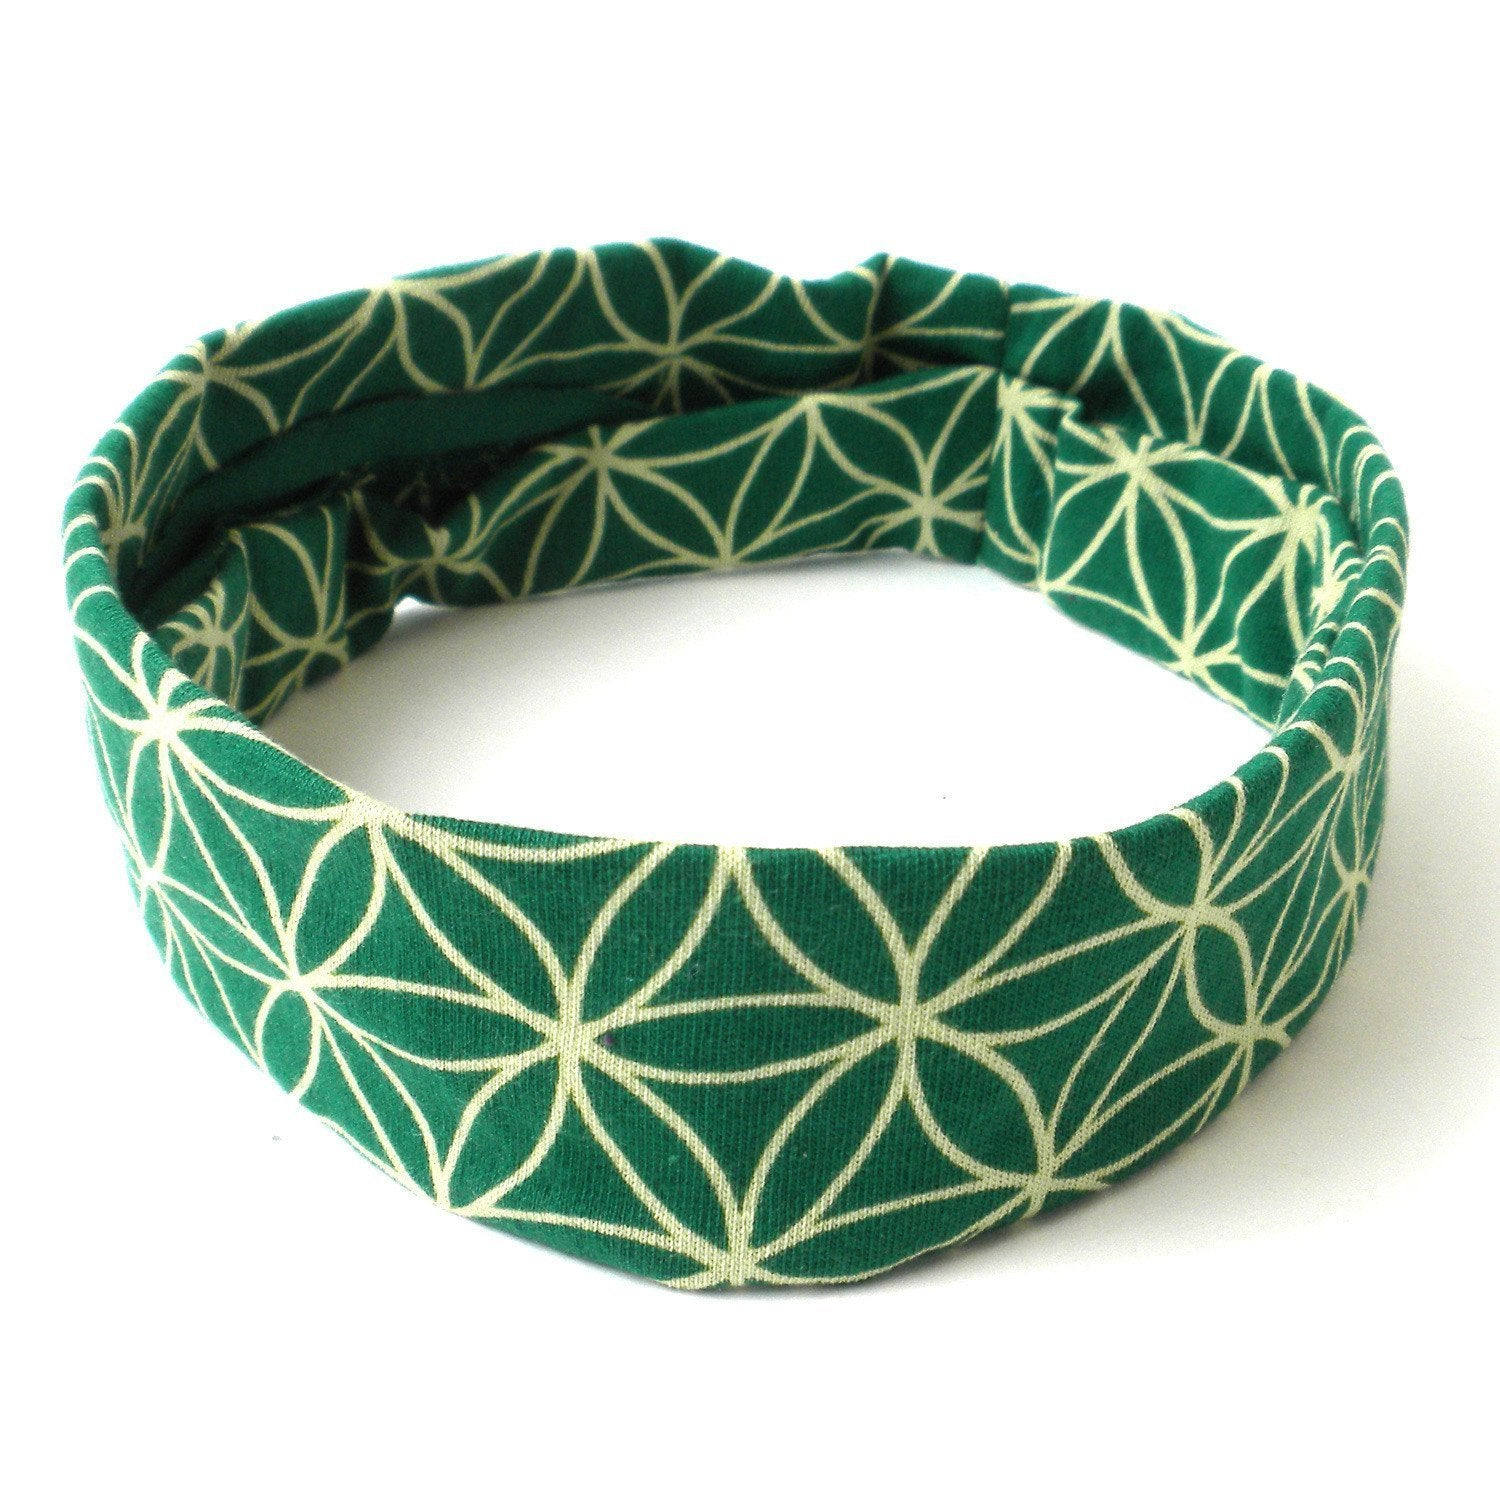 Flower of Life Headband - Green